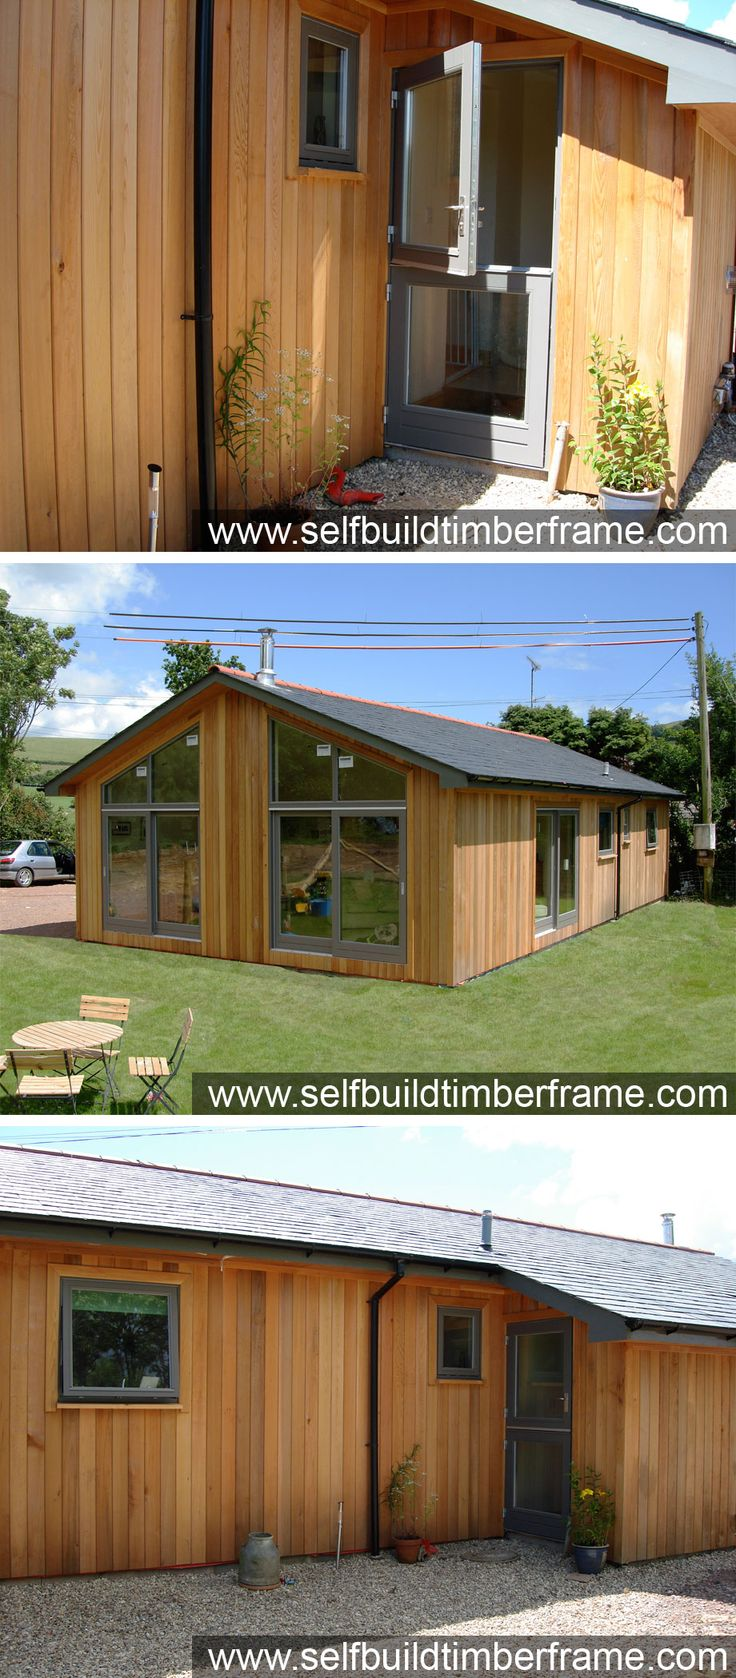 Example Build - Residential 3-Bed Garden Lodge - Self Build Timber Frames